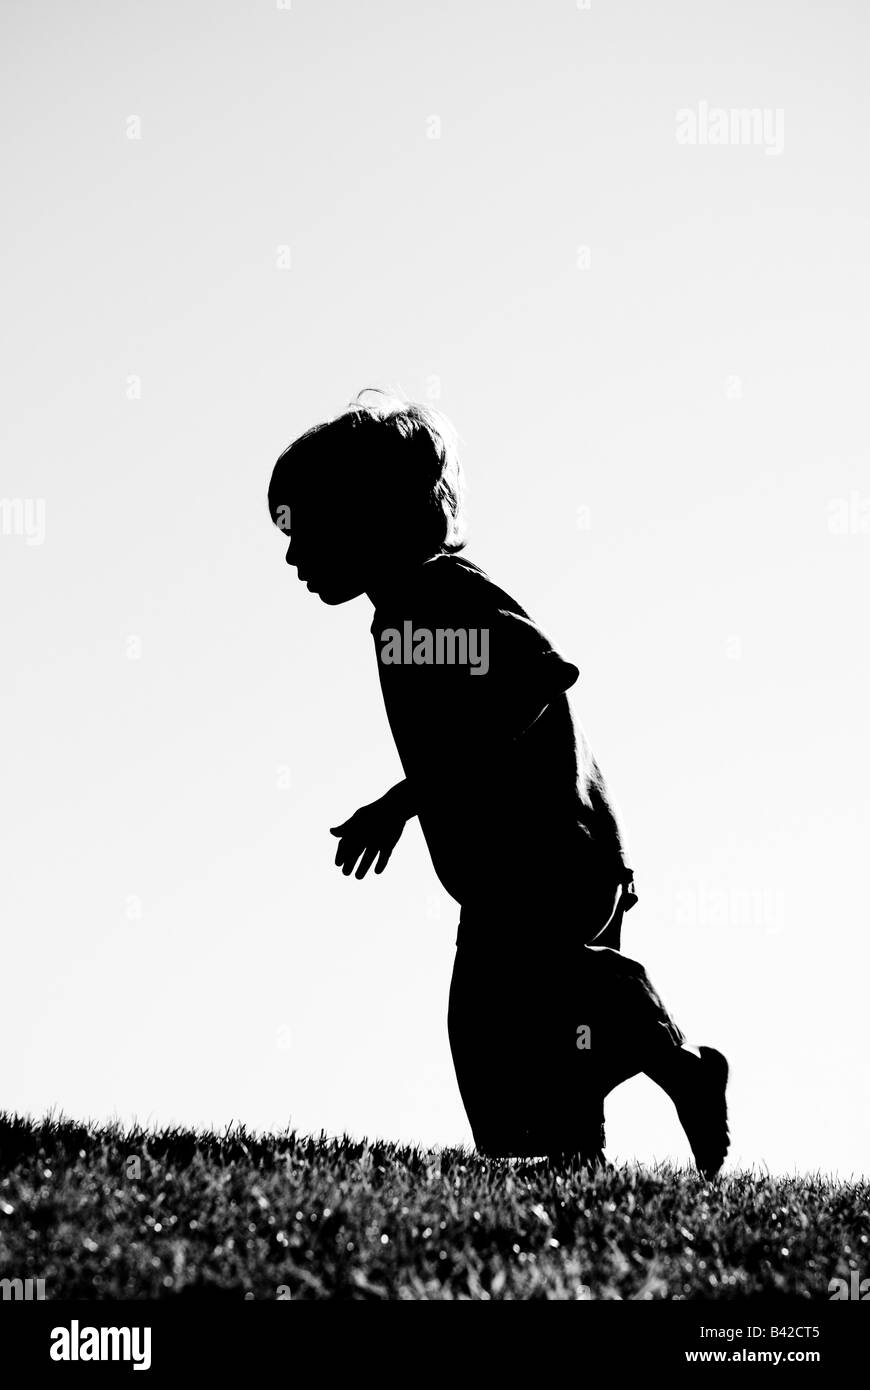 A silhouette of a barefoot boy running. - Stock Image